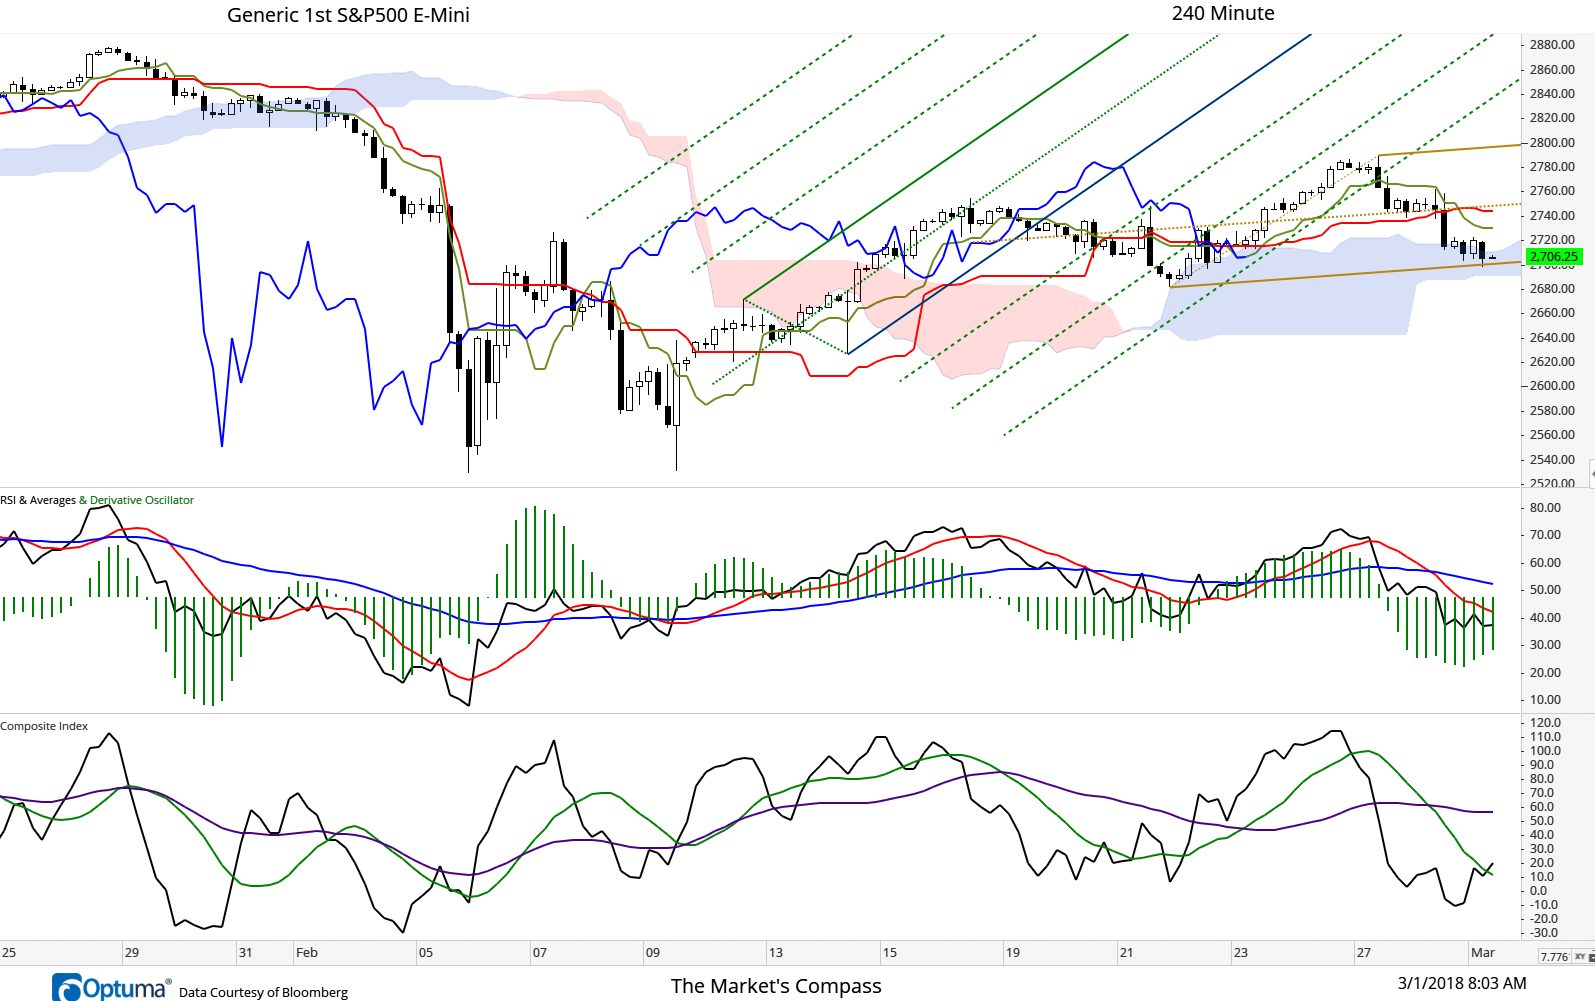 March 1, 2018  The E-Mini fell through support offered by the Median Line of the Schiff Adjusted Pitchfork (brown dashed line) and both the Kijun Sen (red line) and Tenkan Sen (green line) yesterday on the 240-min cloud chart. During the overnight session and this morning support has been found at the Lower Parallel (solid brown line) and the cloud but we expect that support to be impermanent.